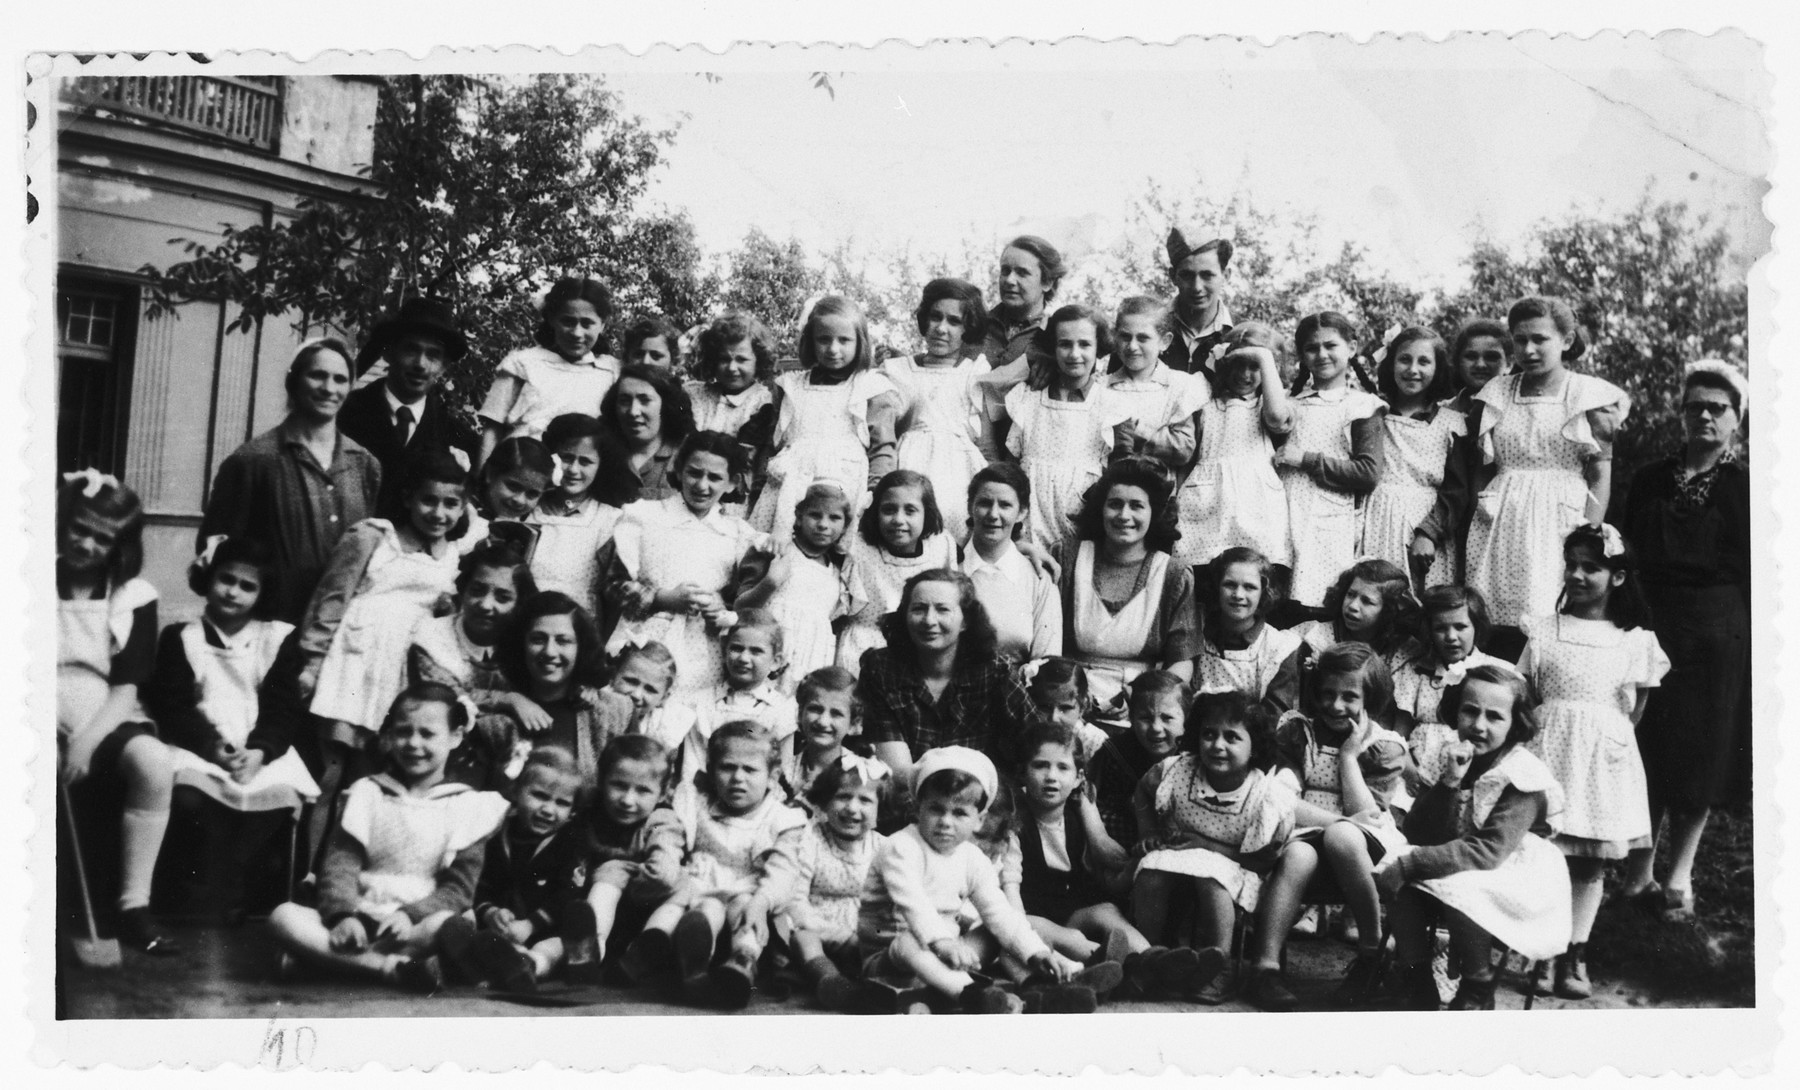 Zsofi Brunn (back row, center) poses with the orphans under her care in a JDC sponsored orphanage outside of Budapest.  Zsofi Brunn directed this orphanage from 1946 to 1948.  The children were retrieved from hiding from the JDC, and Zsofi worked with the Zionist underground to bring the children to Israel.  In 1948 an informant told the governmnet about her activities, and she had to flee to Germany.